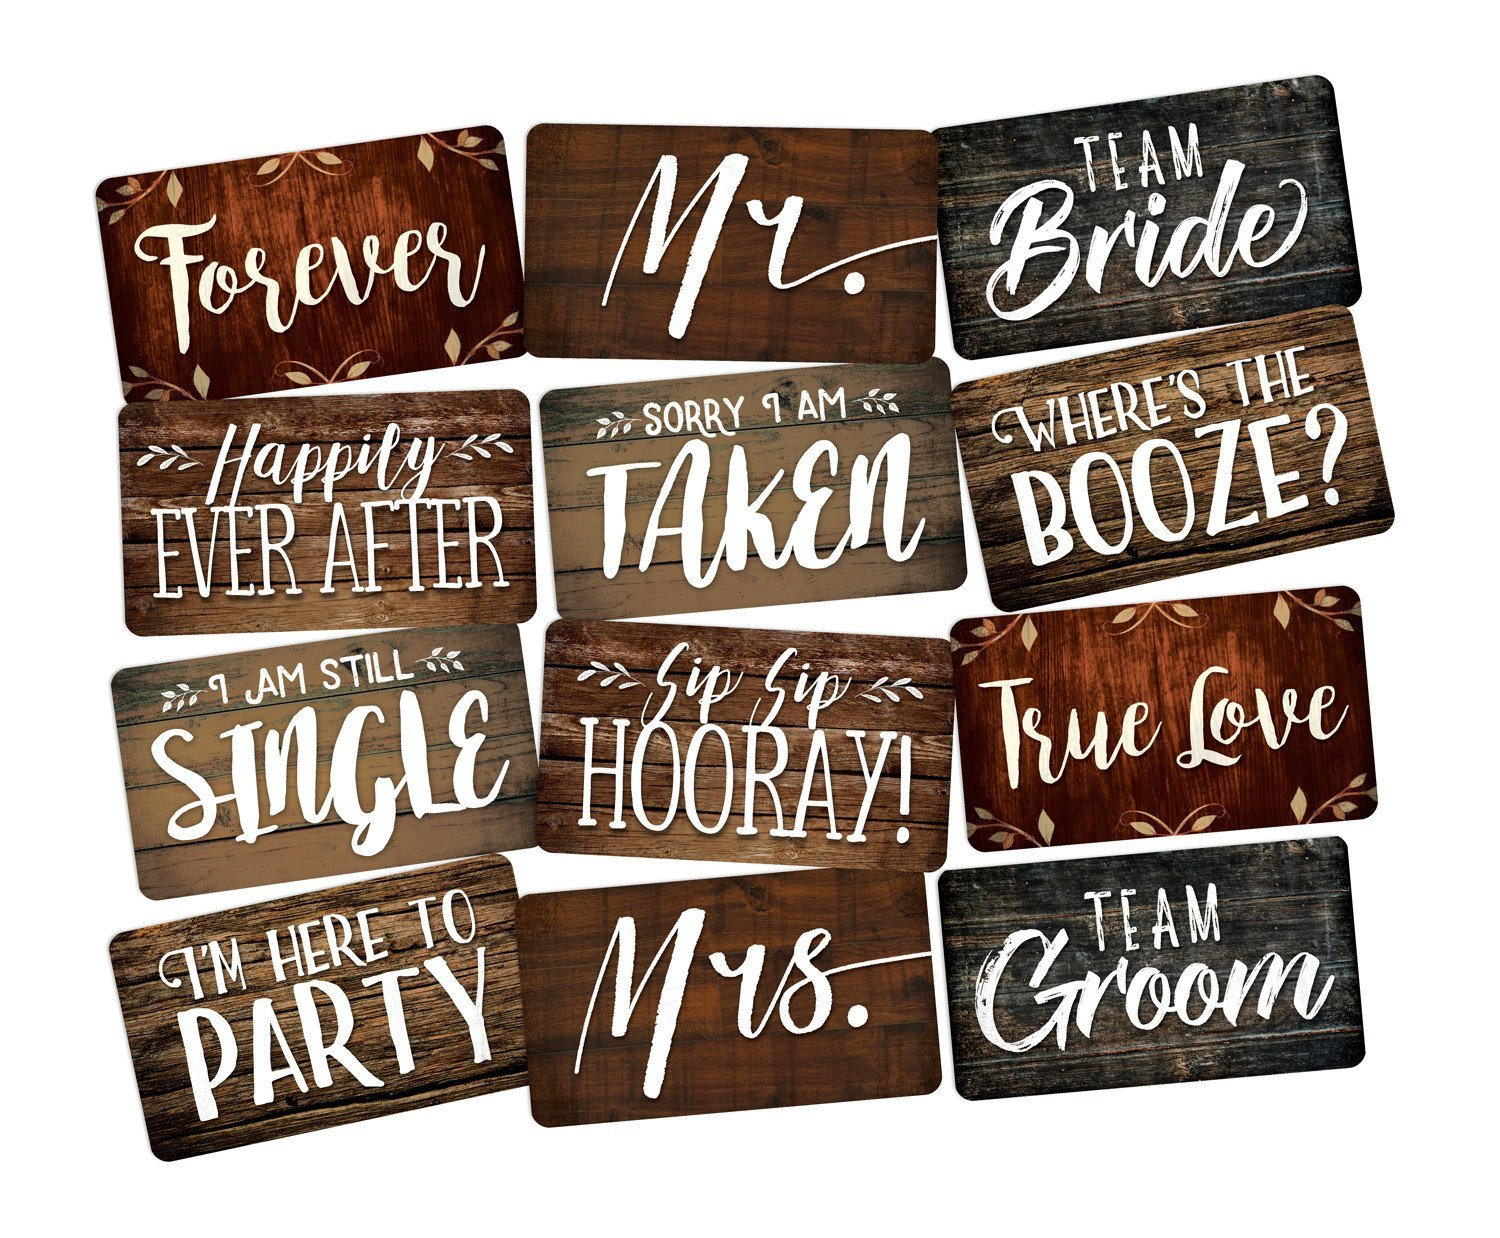 PHOTO BOOTH PROP 6 PC SET DOUBLE SIDED, Wedding Prop Signs perfect for DIY Photo Booth Great for Photo Booth Rentals. Fun Wedding Photo Booth Props Guests Will Love!